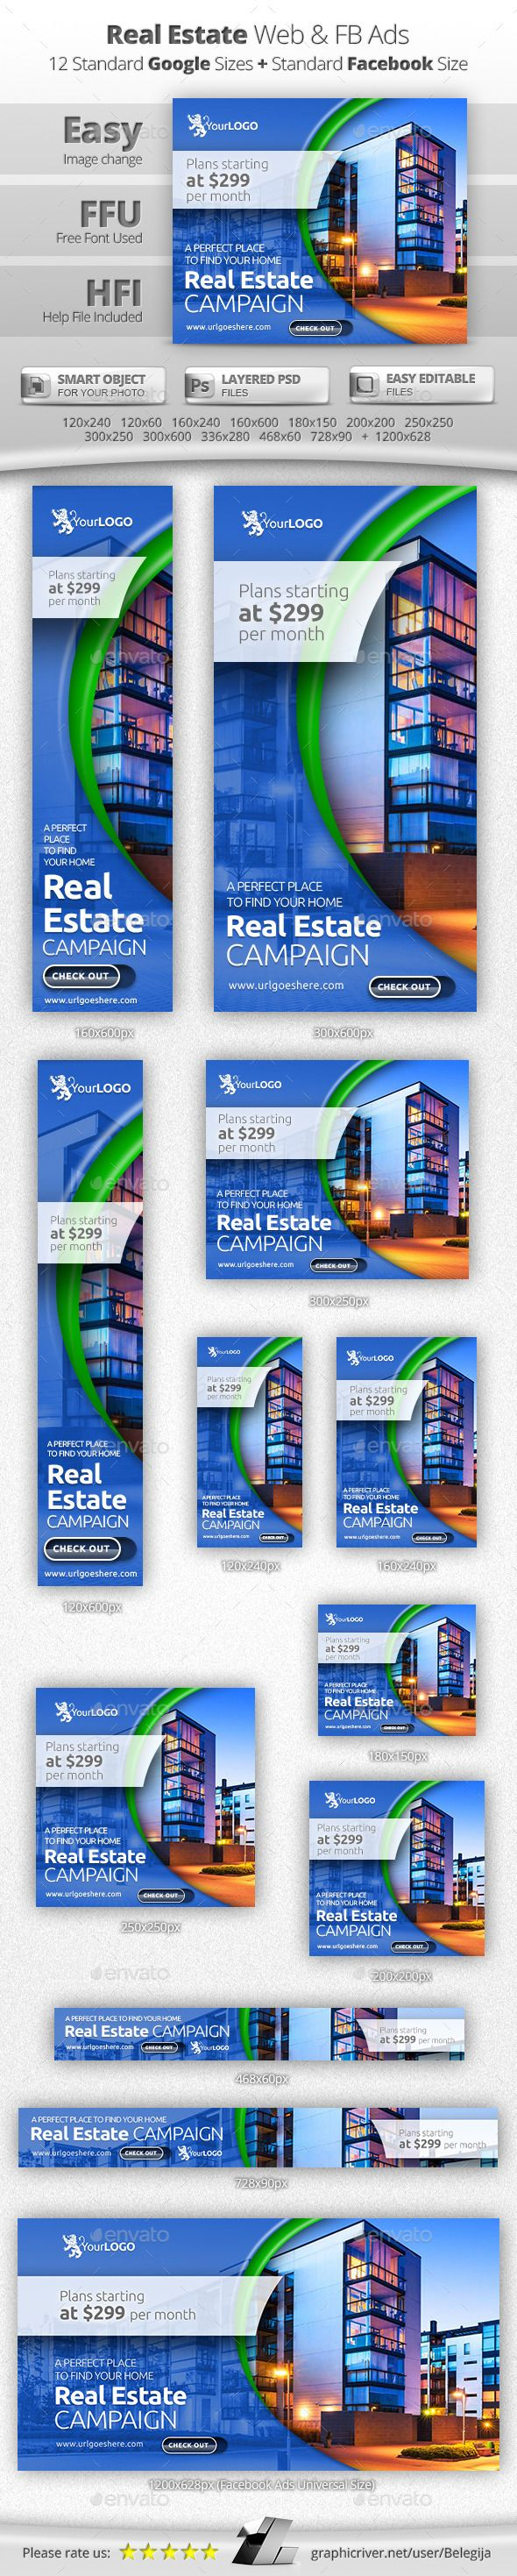 top ideas about real estate ads real estate top 25 ideas about real estate ads real estate humor funny real estate and real estate marketing